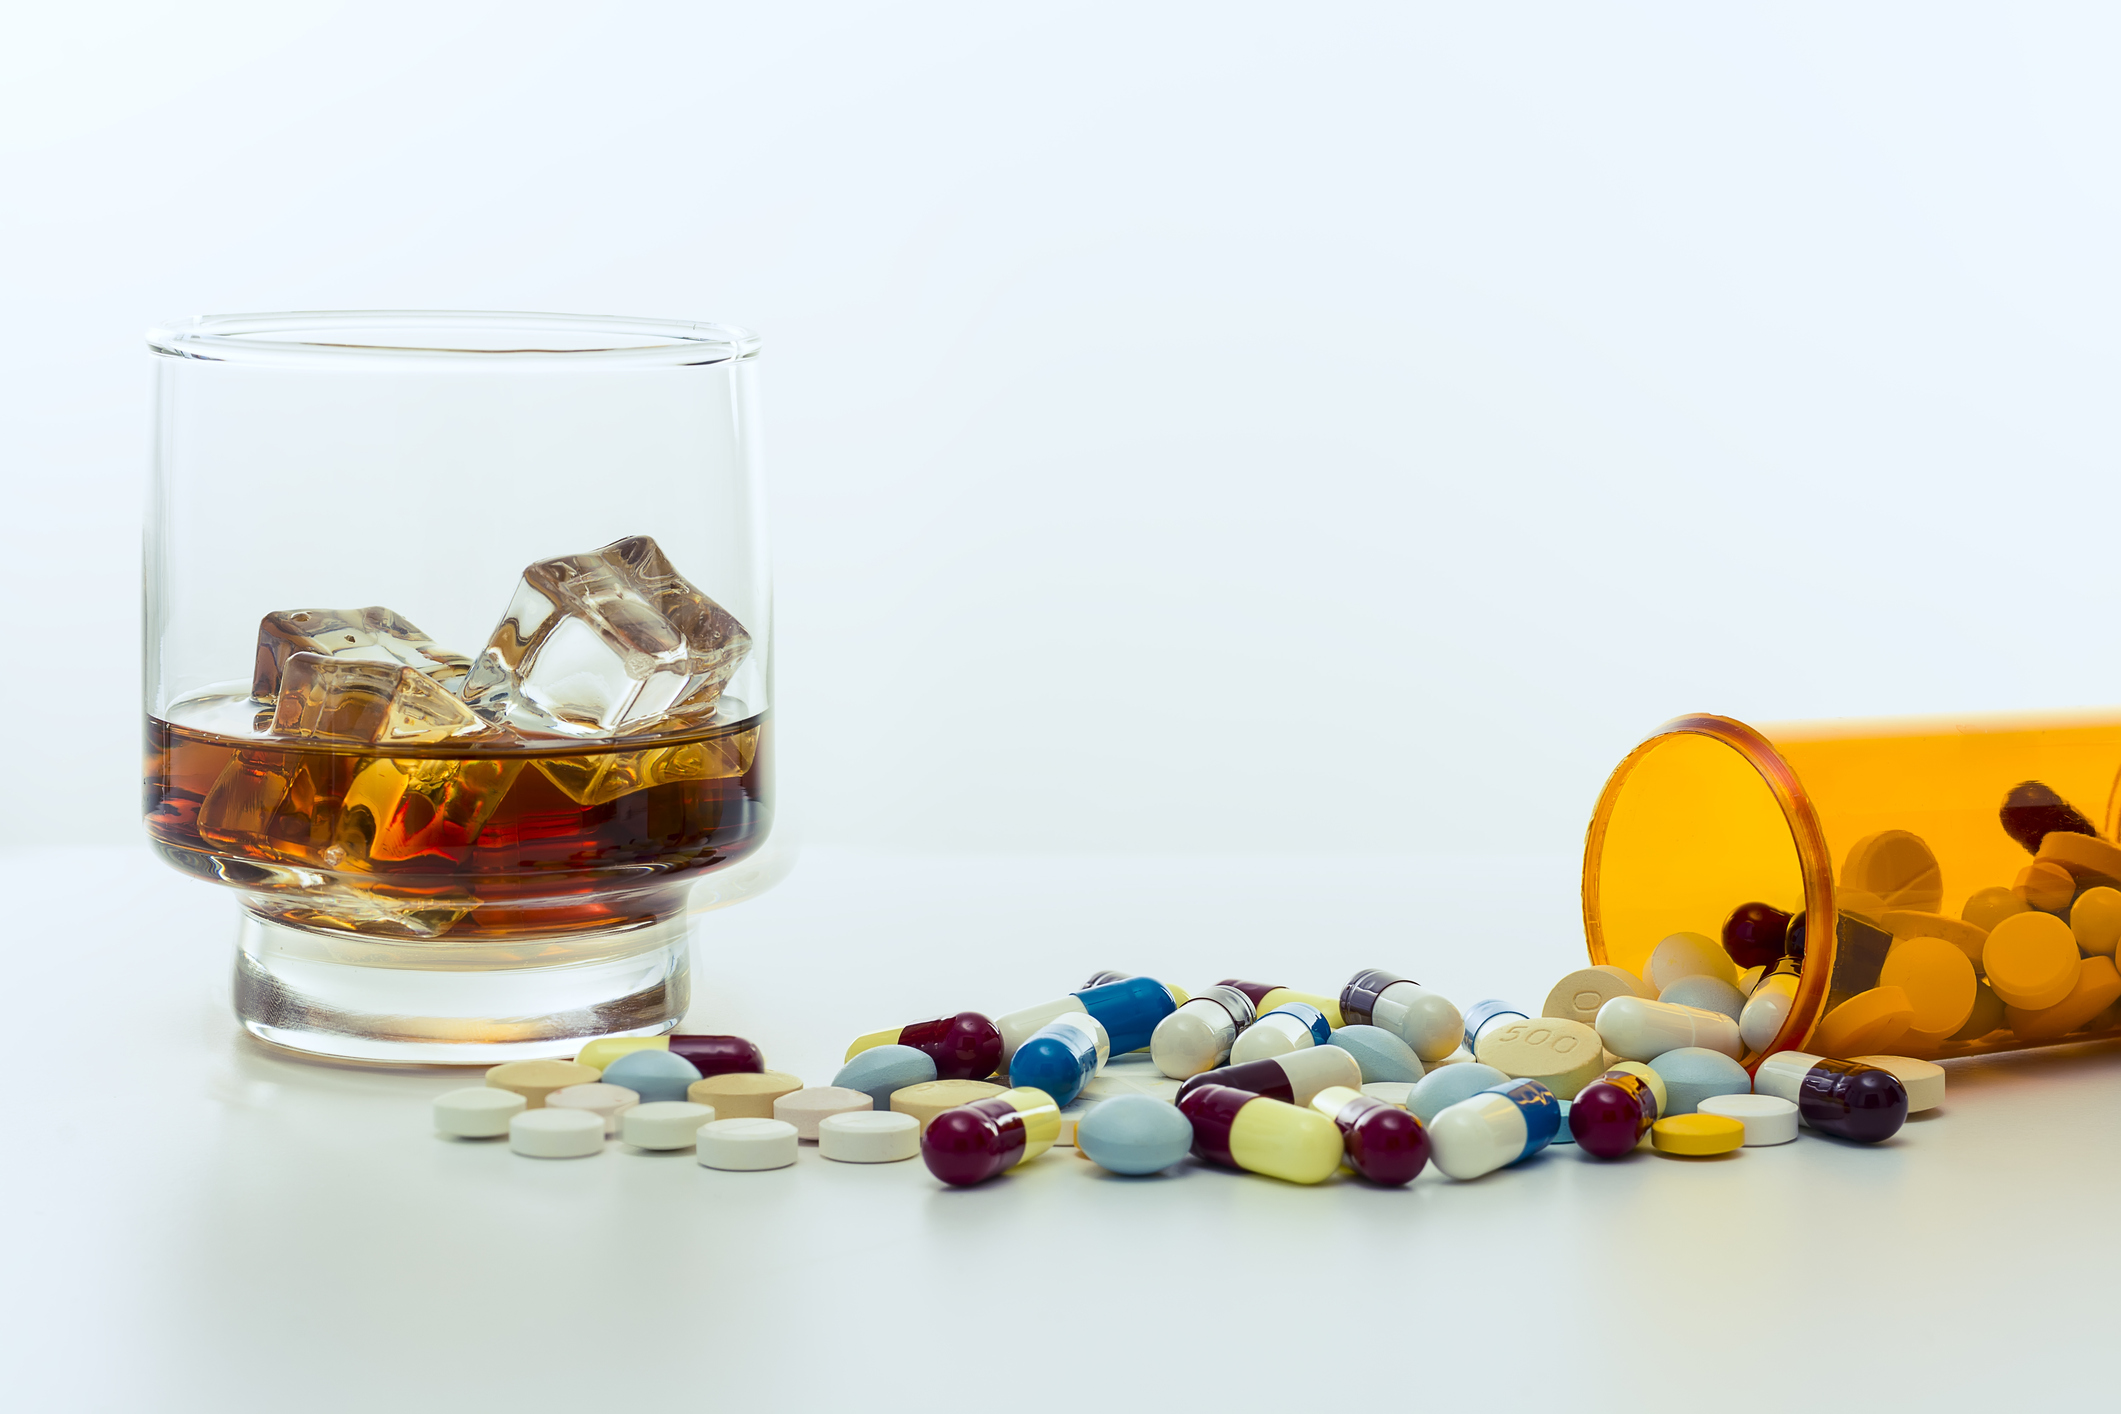 Should You Try Drugs or Alcohol?